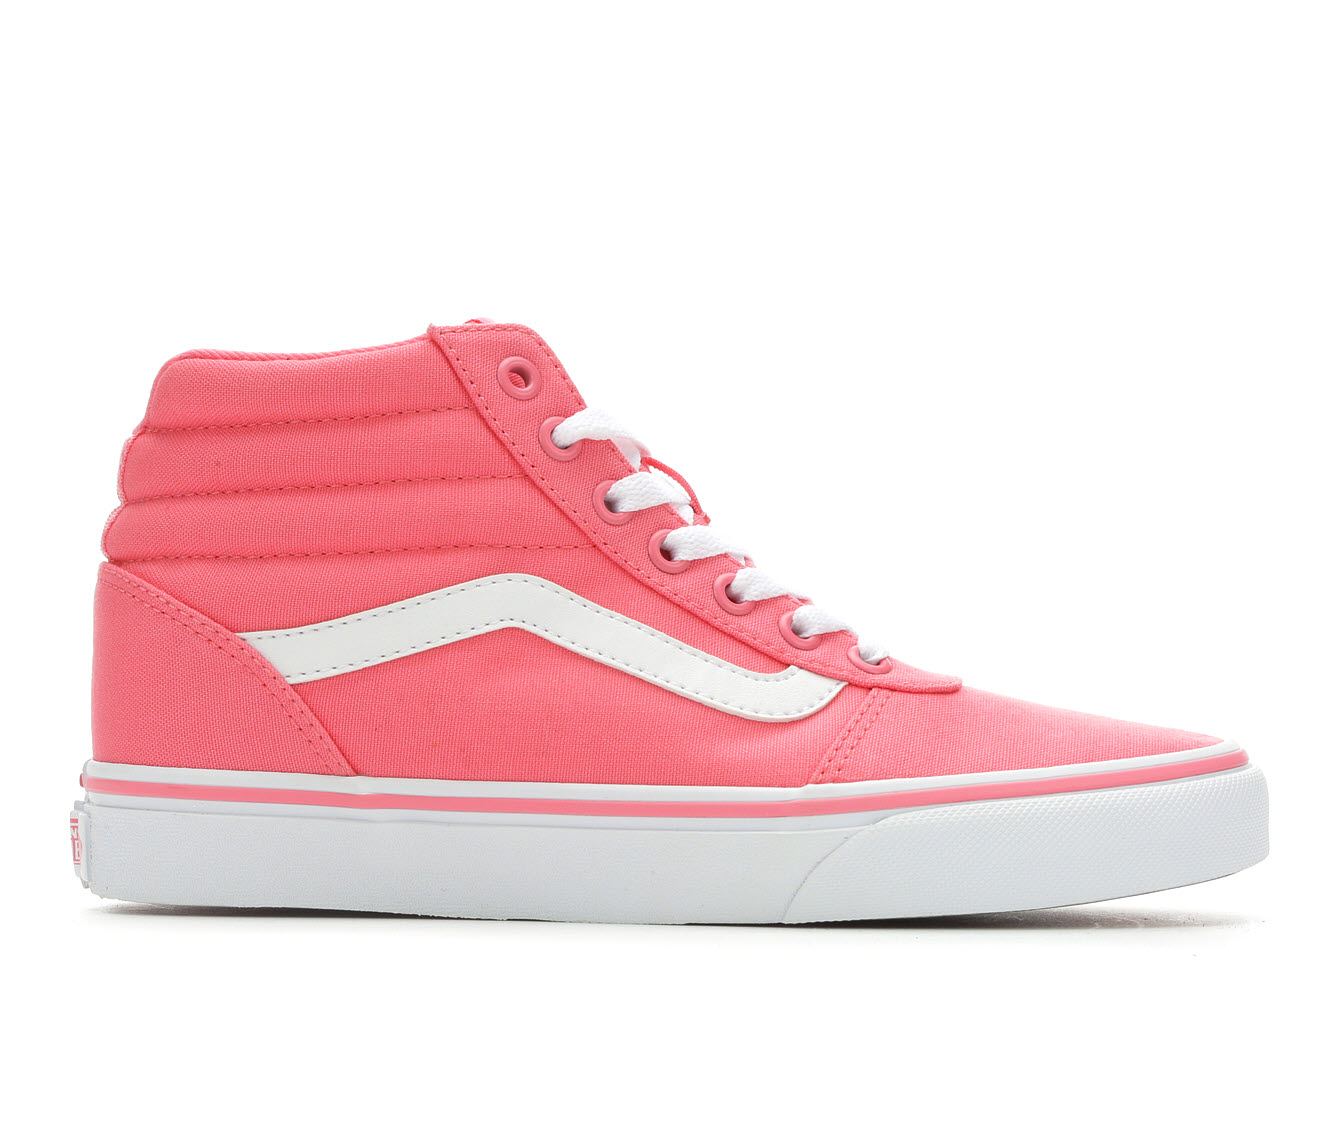 Vans Ward Hi Women's Athletic Shoe (Pink)